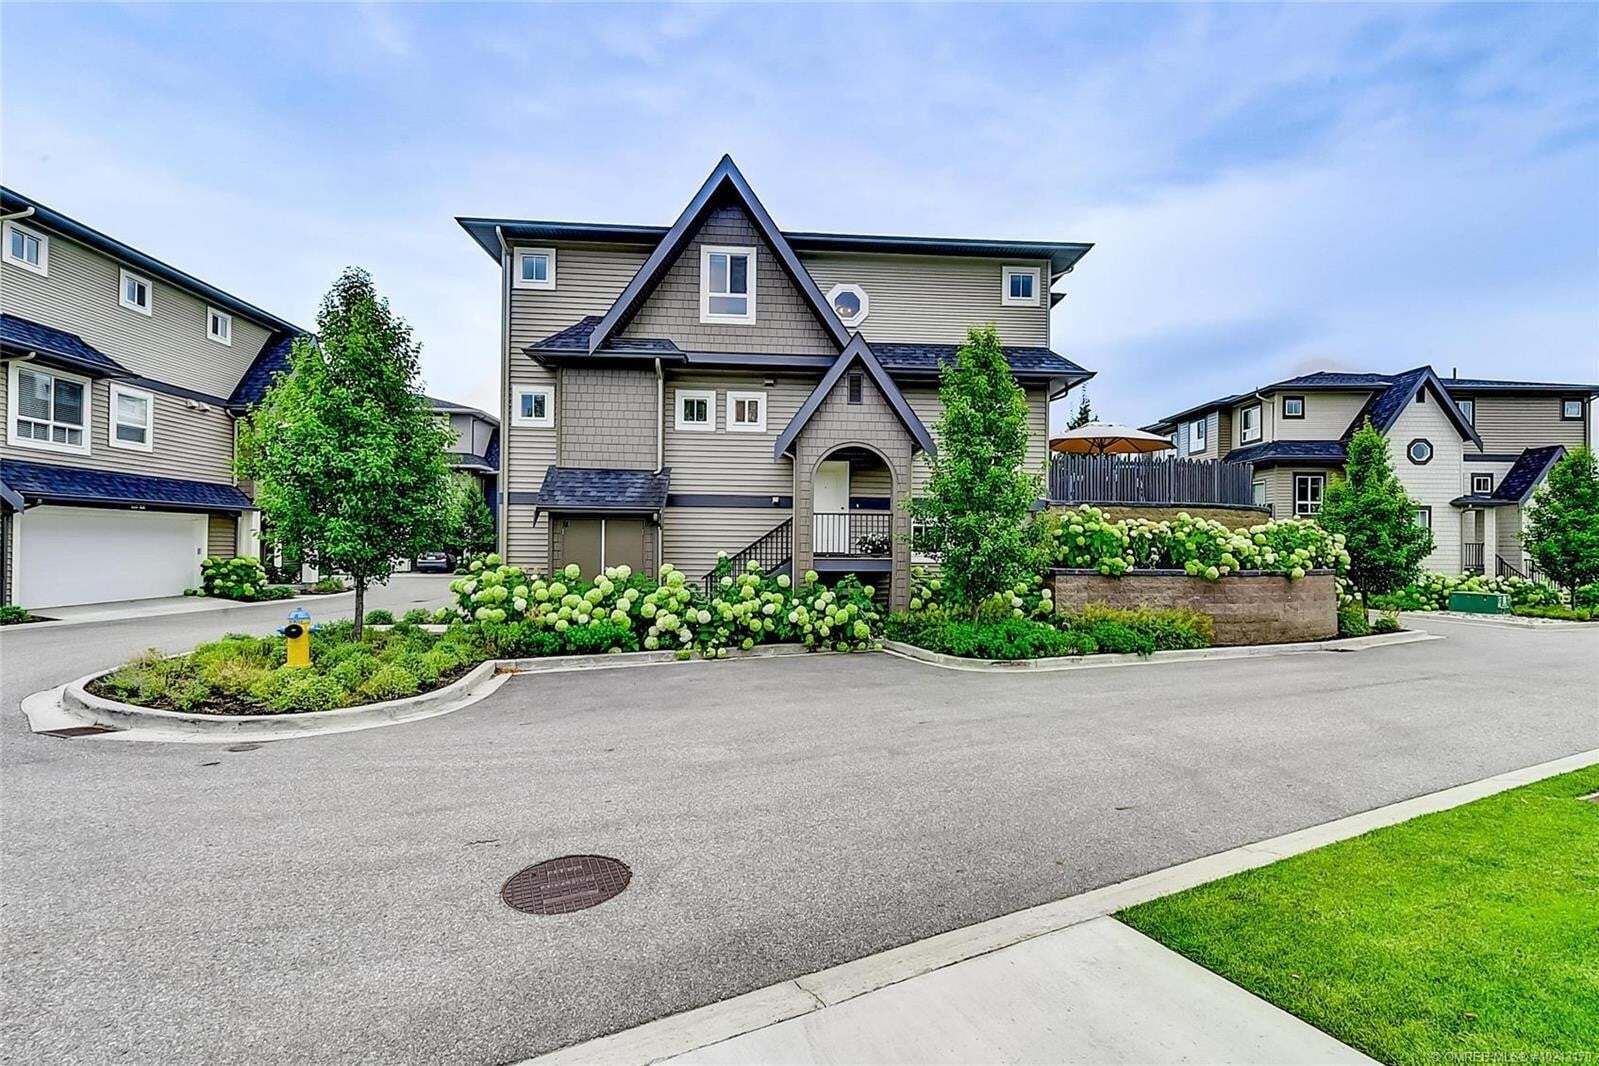 Townhouse for sale at 680 Old Meadows Rd Kelowna British Columbia - MLS: 10213170